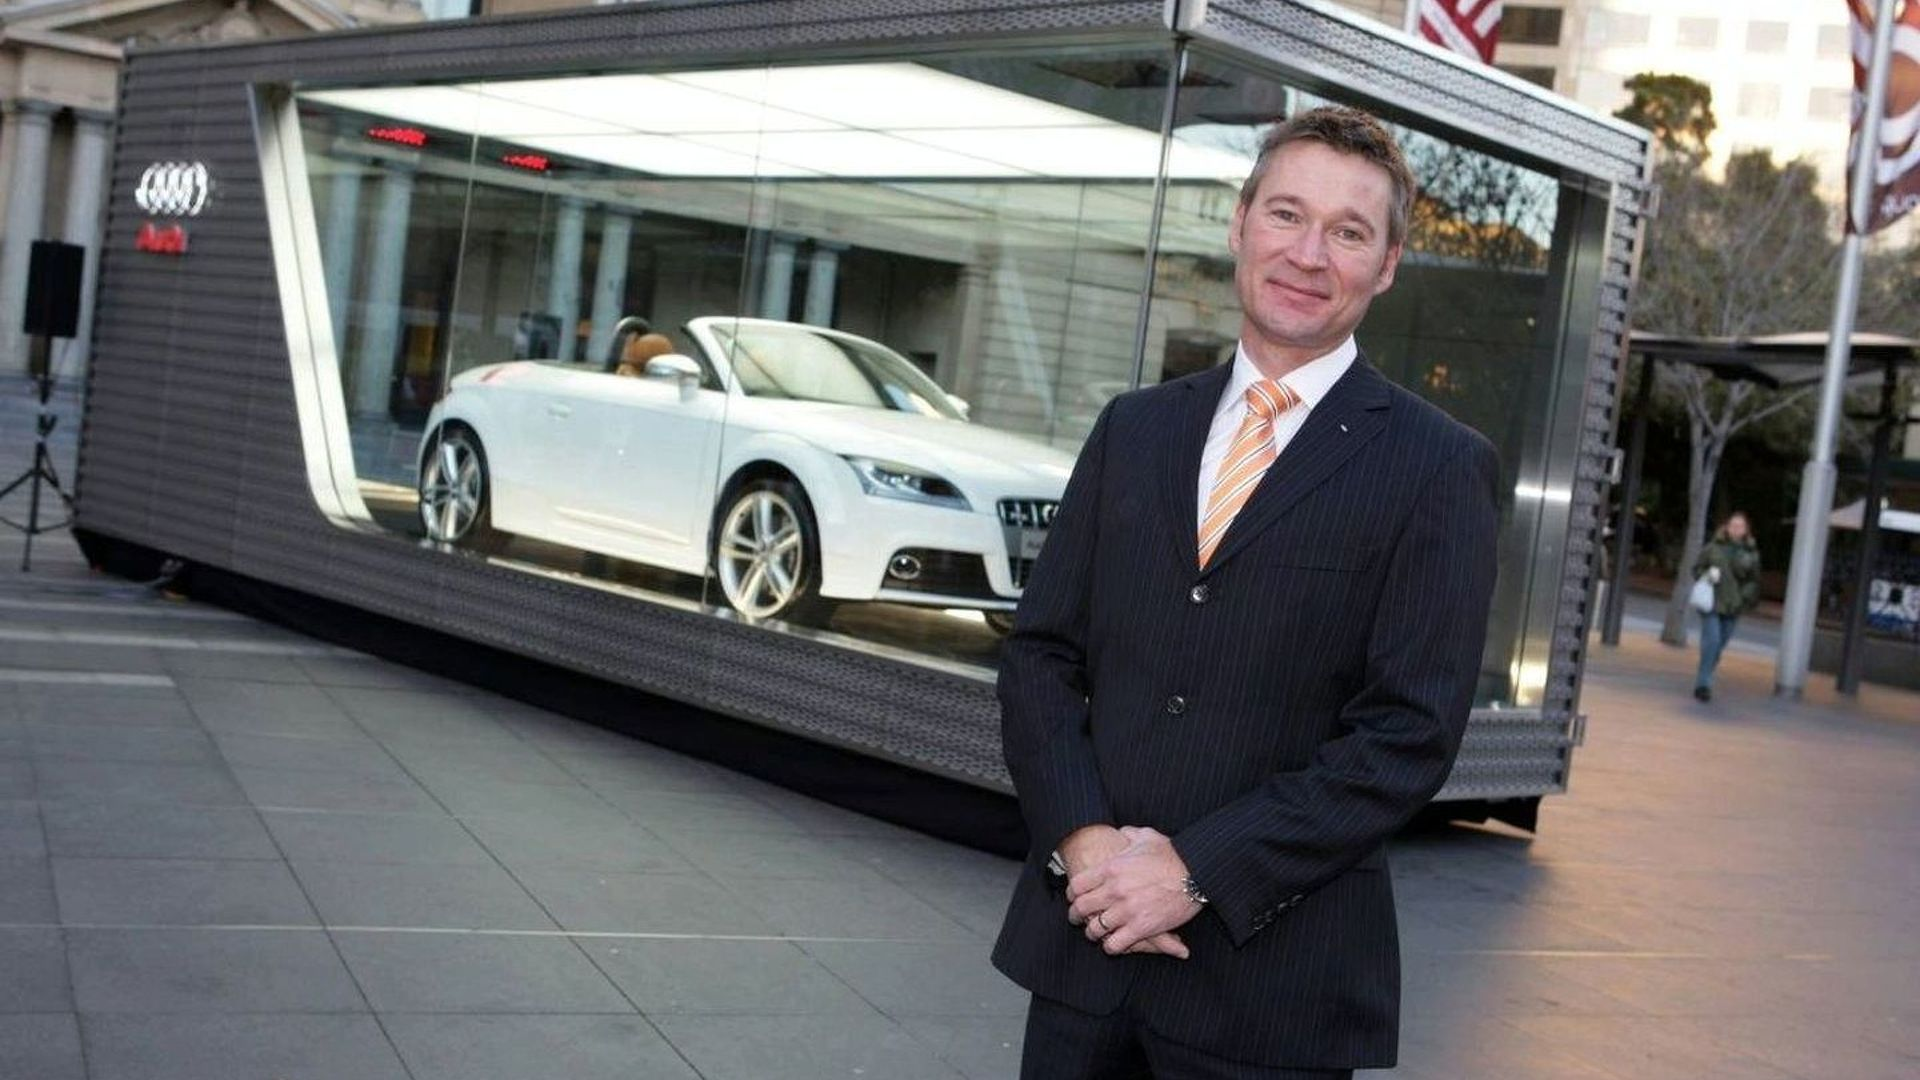 Audi One Car Showroom Is Launched In Sydney - Audi car showroom